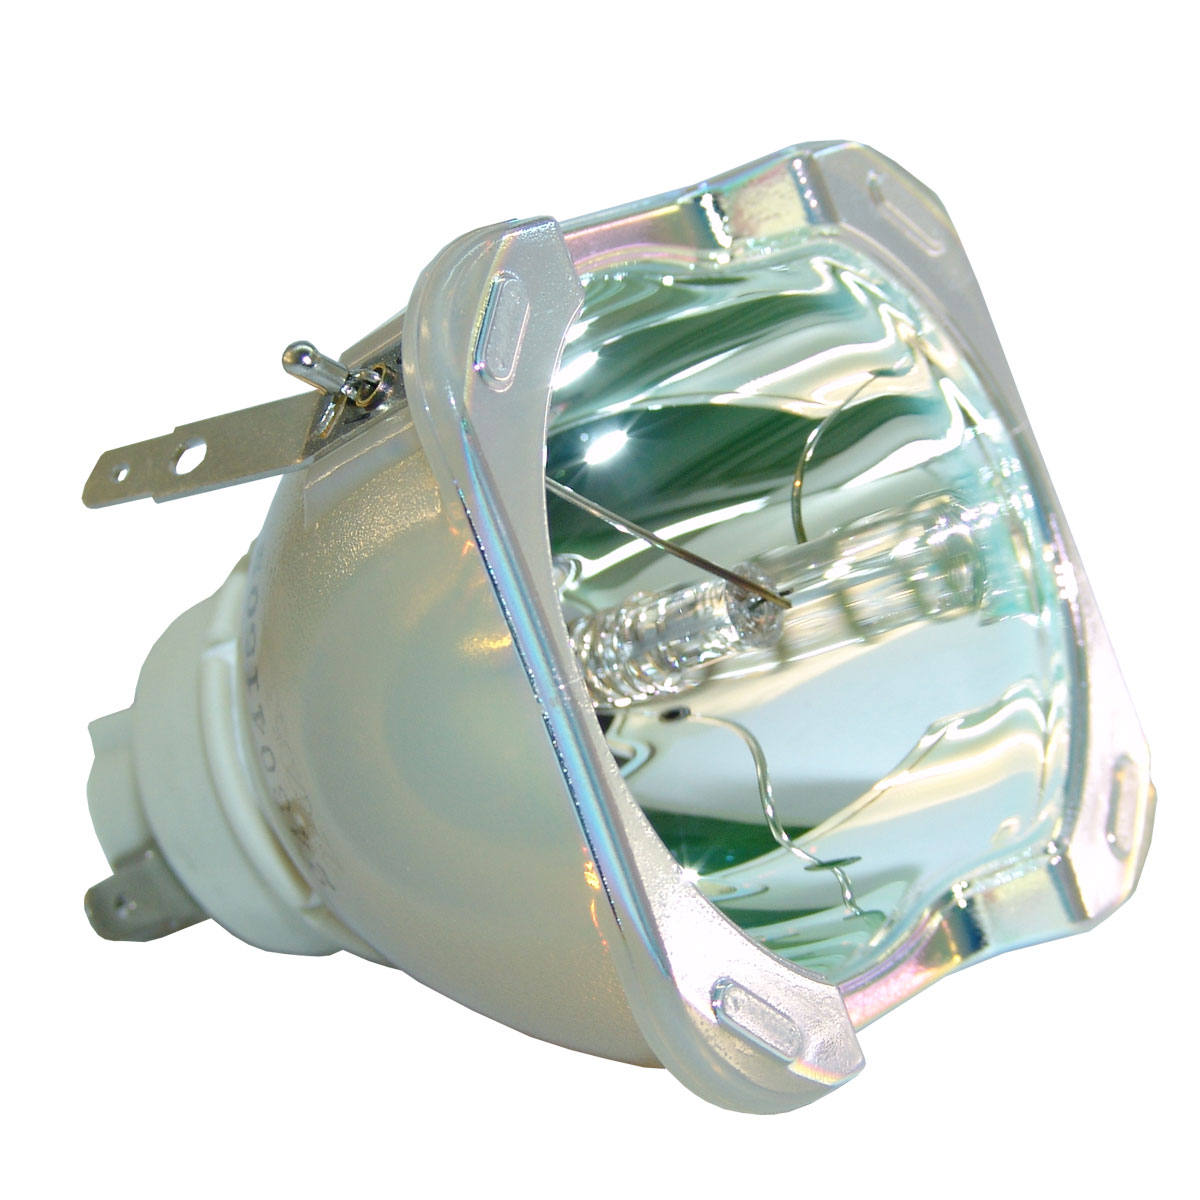 Original Philips Projector Lamp Replacement with Housing for InFocus SP-LAMP-082 - image 4 de 5